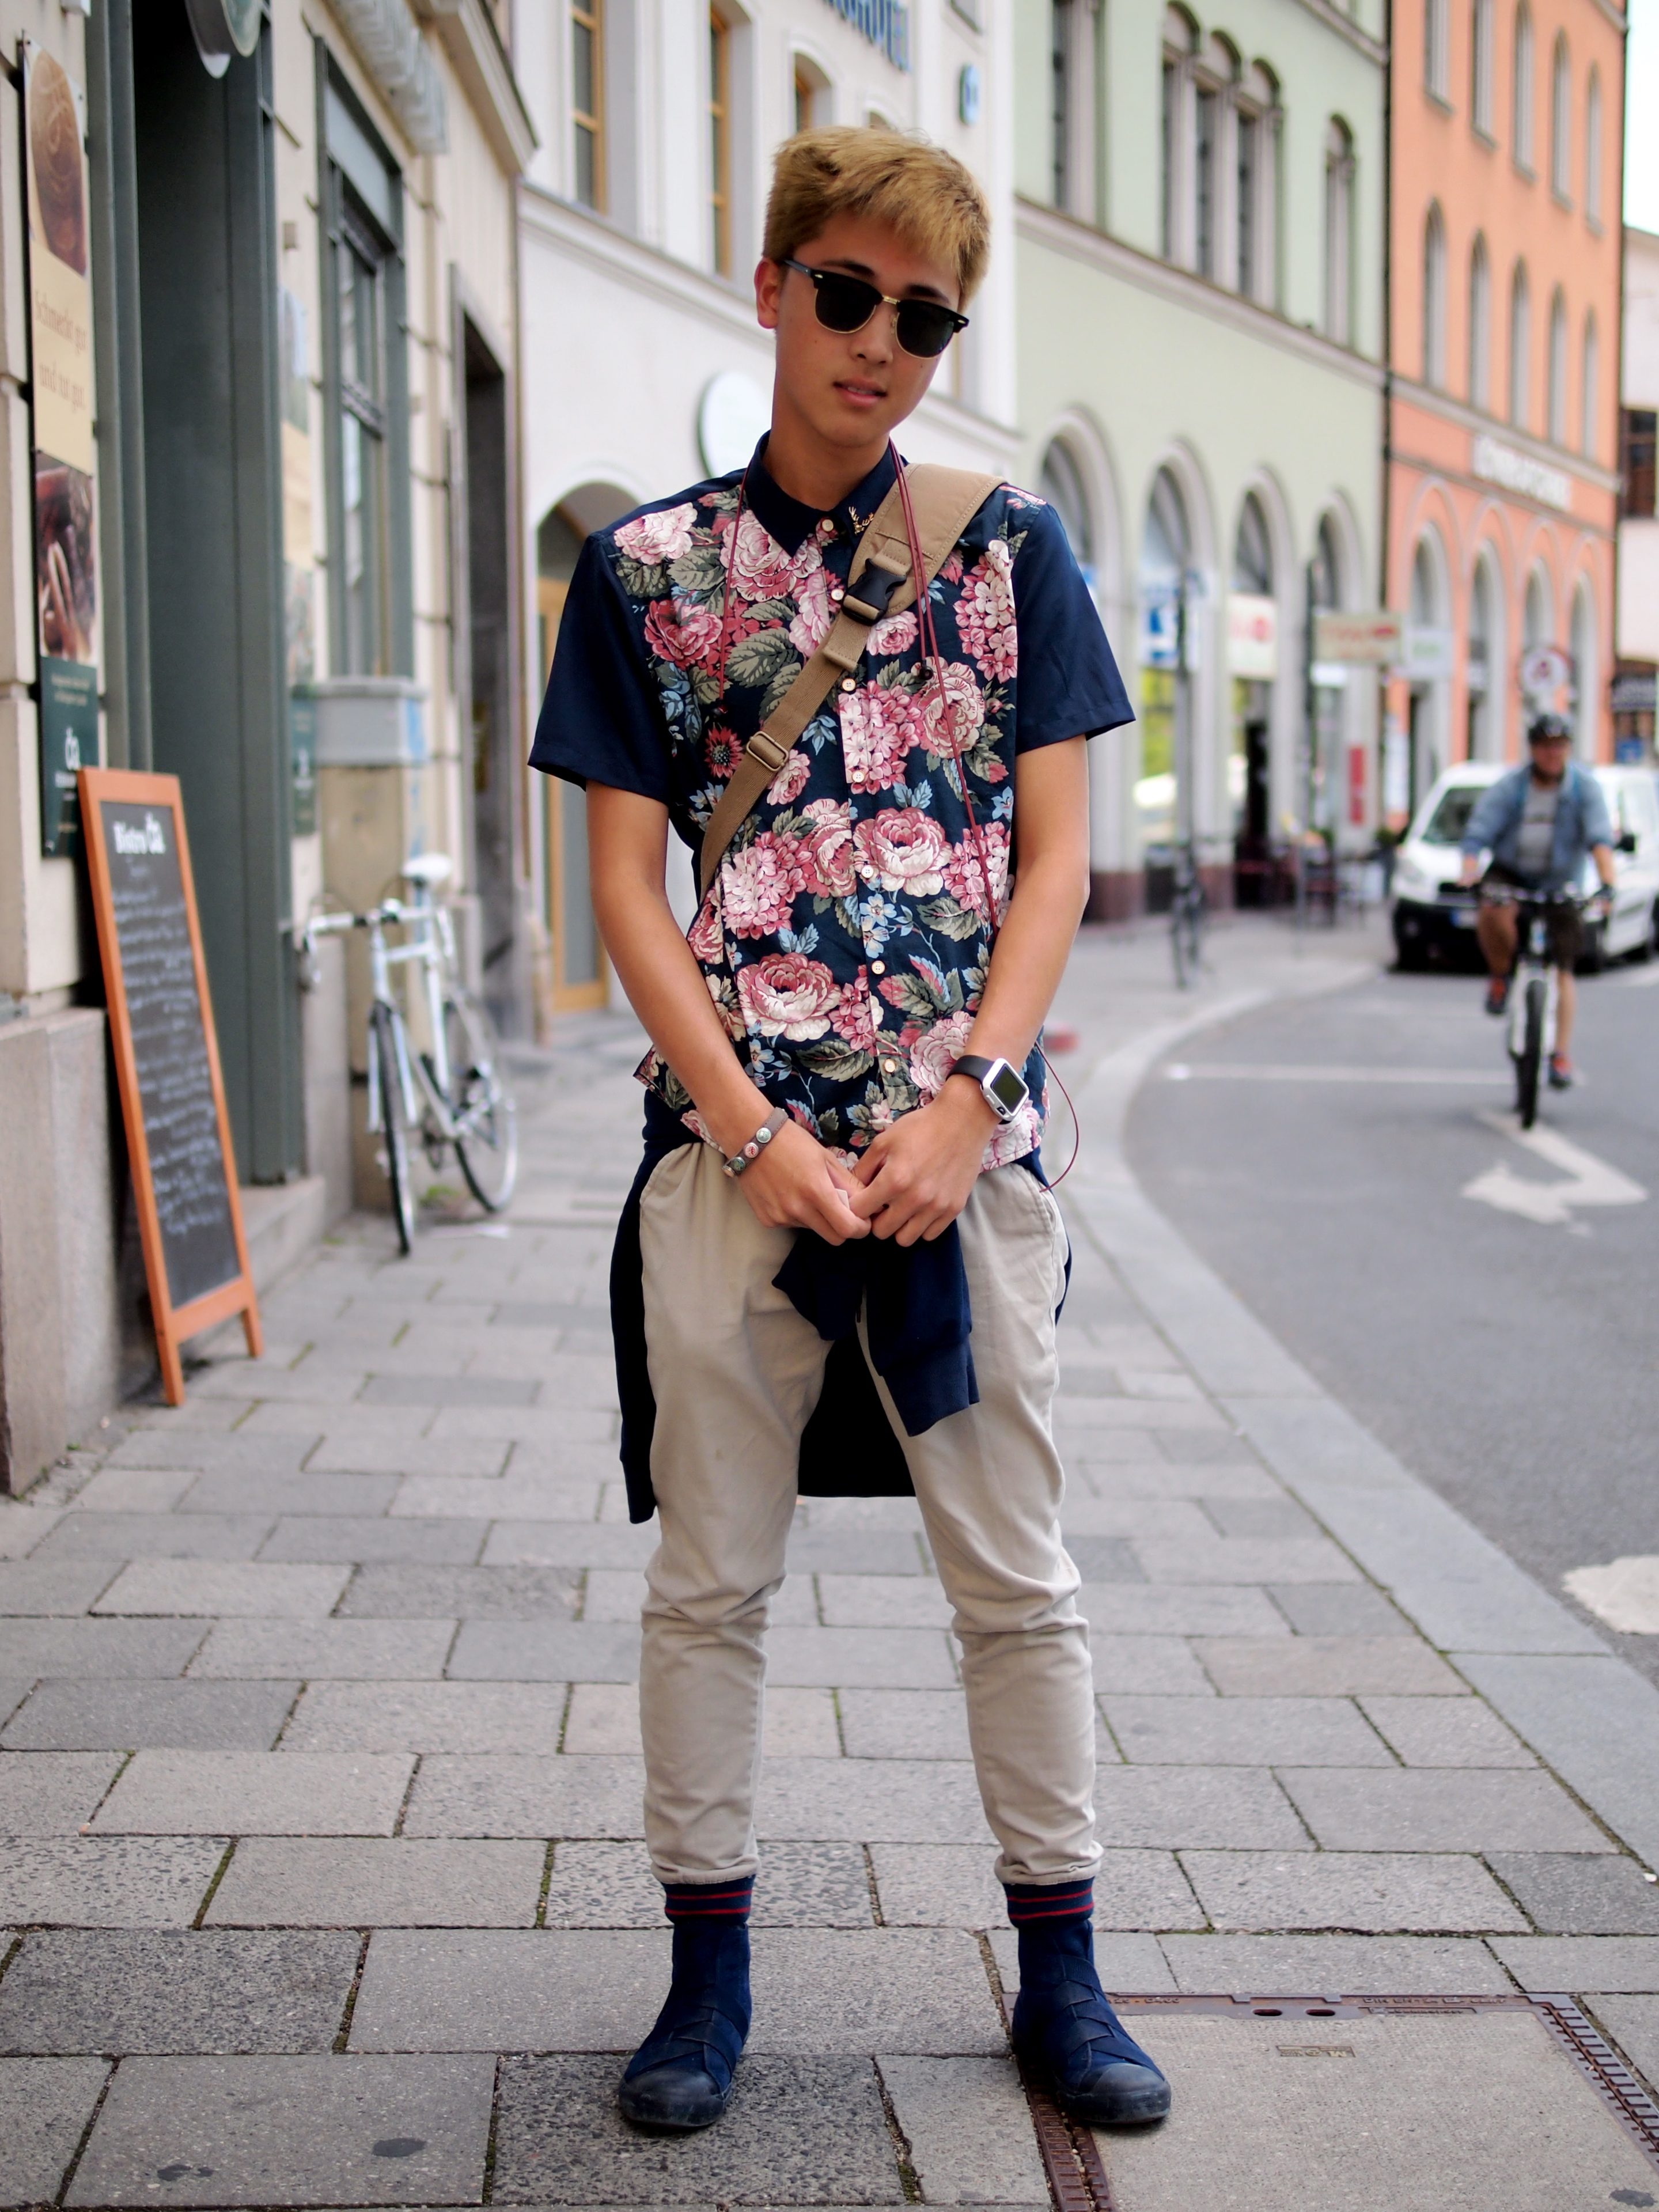 Chinese Street Fashion Men Images Galleries With A Bite